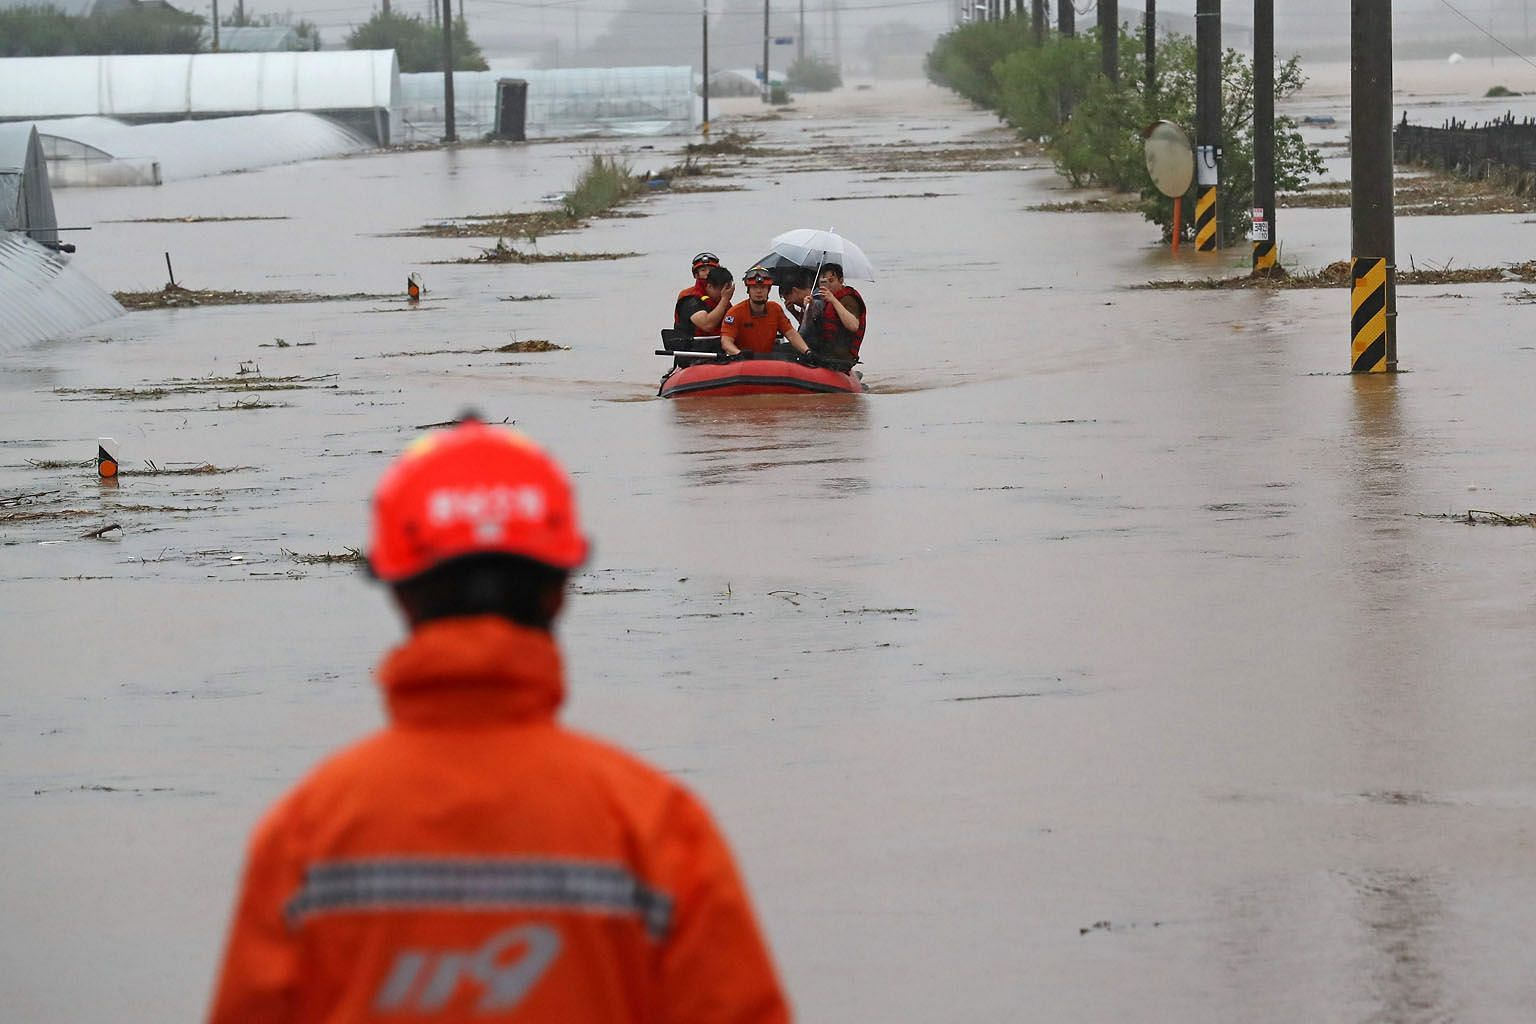 Big waves battering Shengsi county in eastern China's Zhejiang province yesterday as Hagupit, the fourth typhoon this year, struck. PHOTO: XINHUA Rescue workers in South Korea helping people cross a flooded field in a village near Cheonan on Monday.